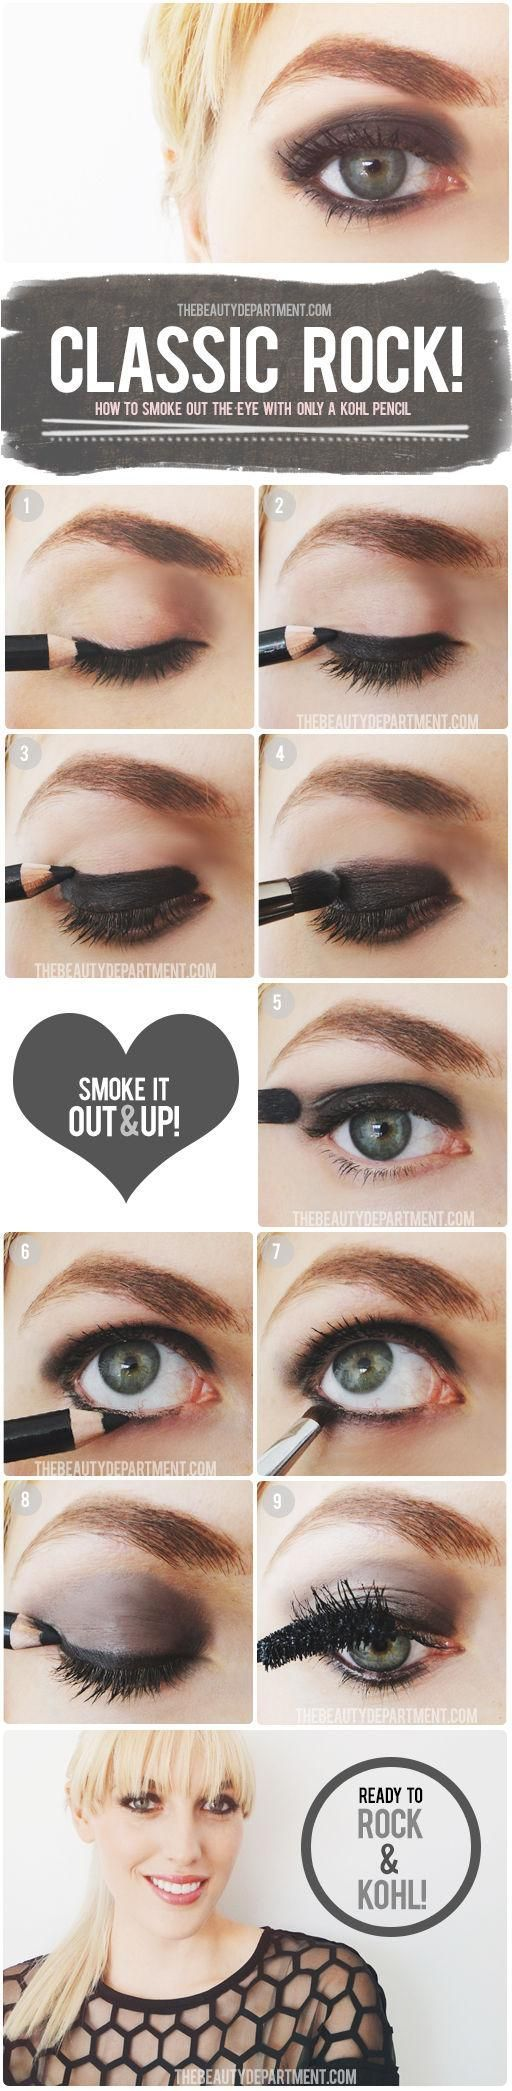 10 eye makeup tutorials from Pinterest that'll turn you into a beauty PRO